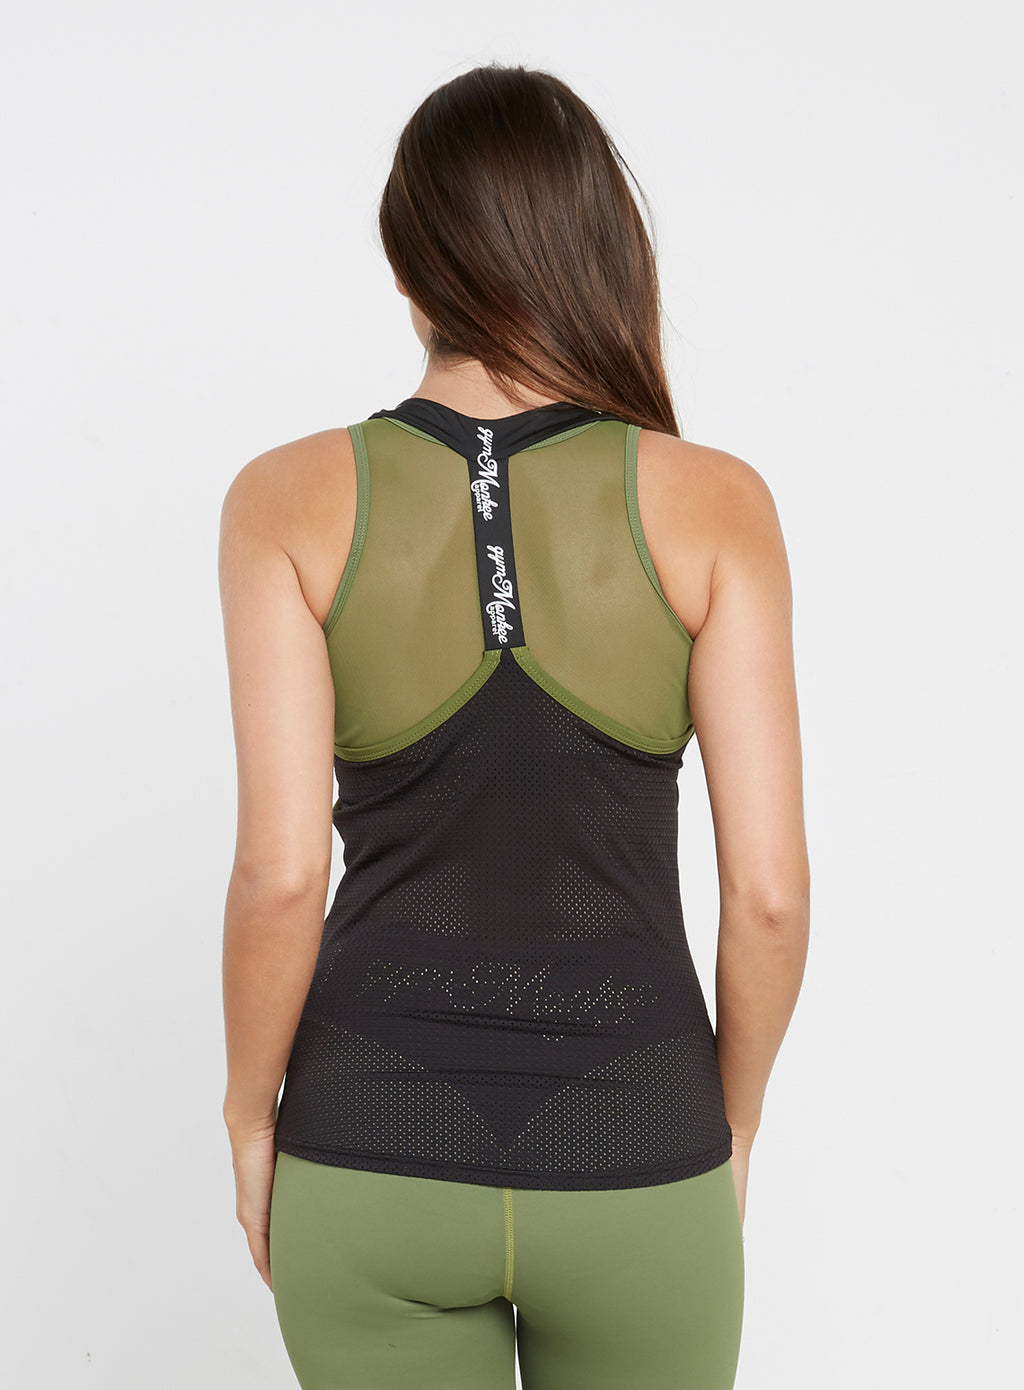 Gym Monkee - Ladies Black and Khaki Strap Top REAR